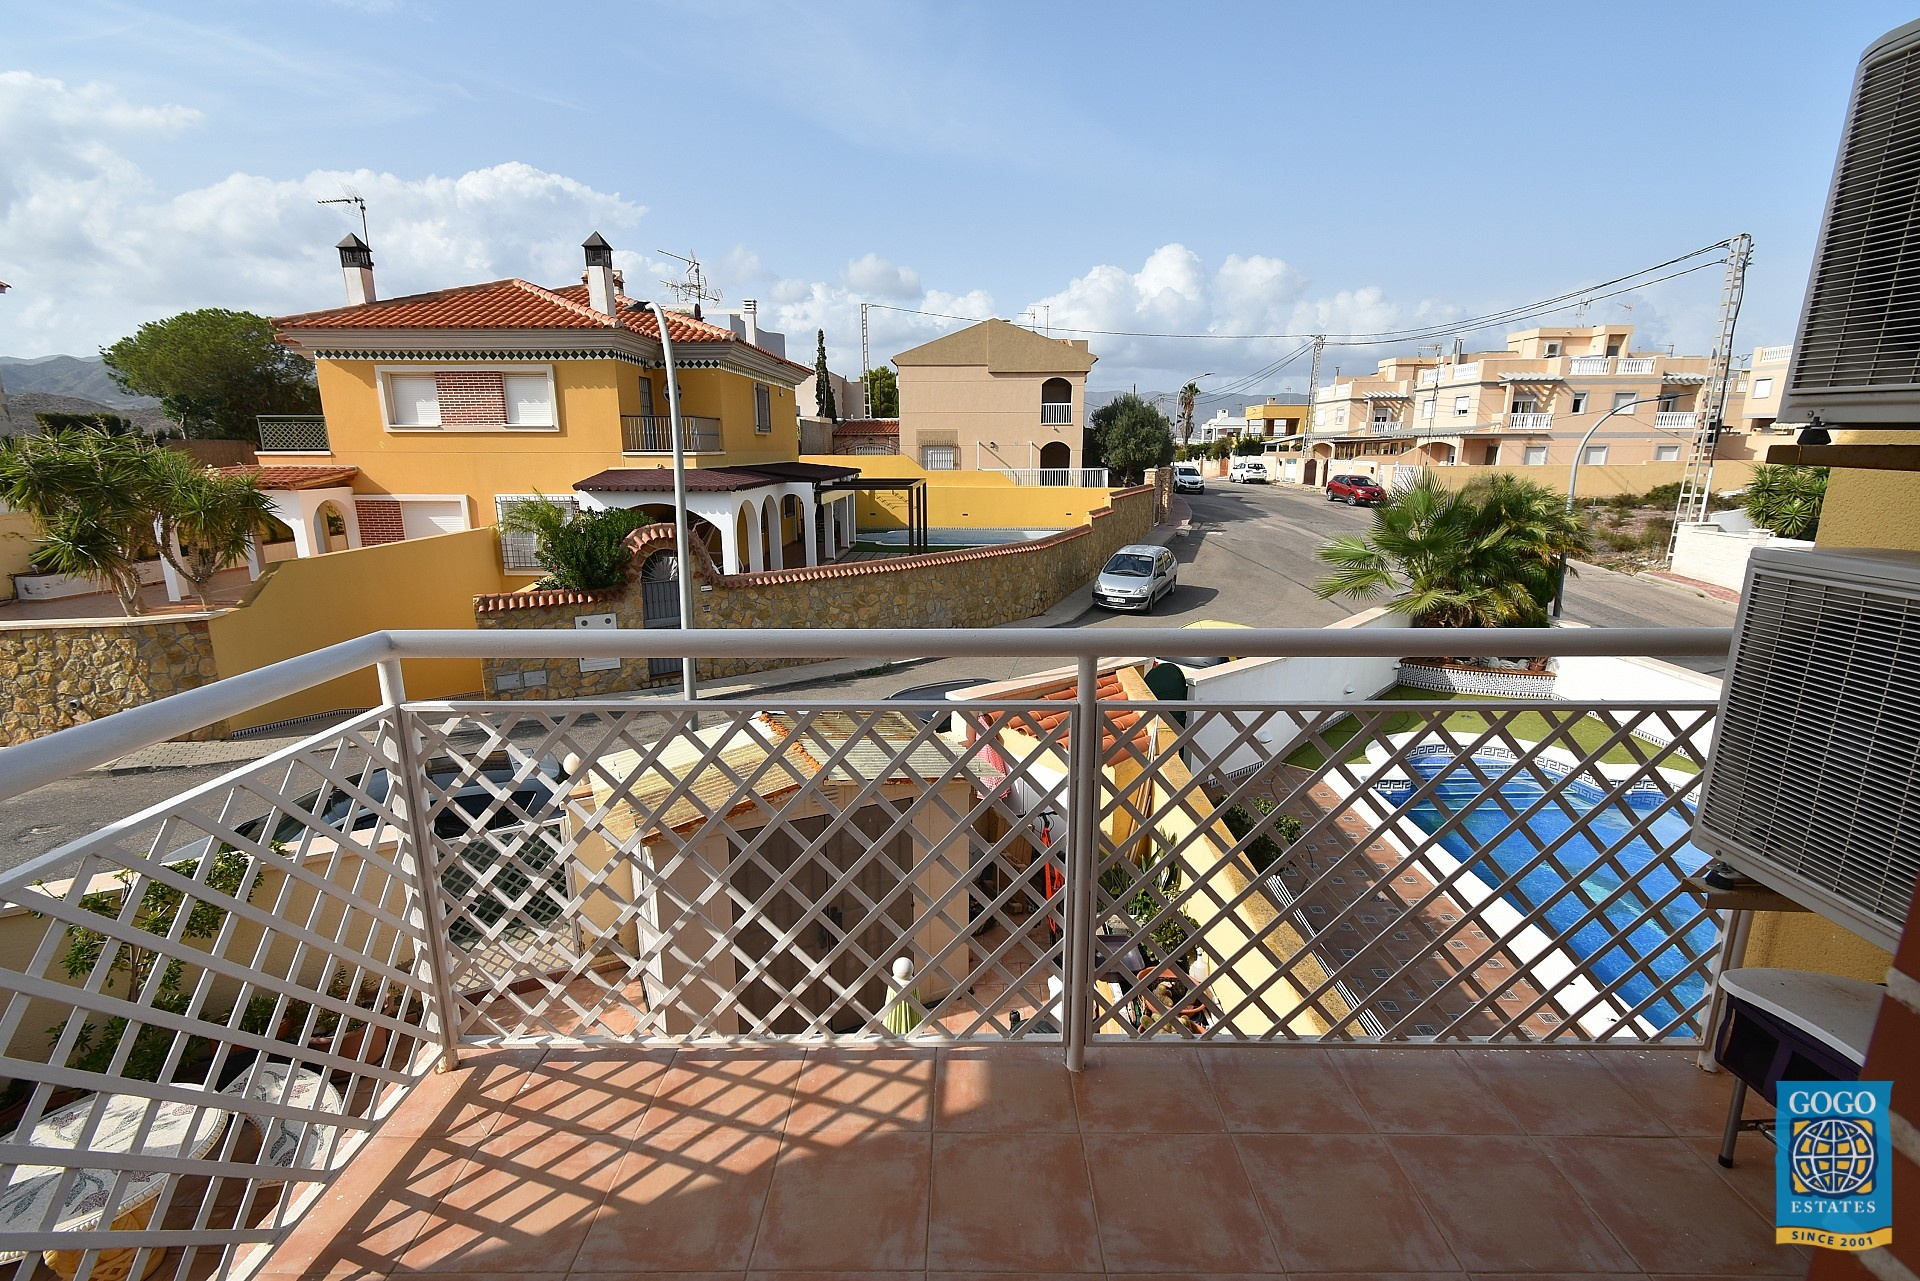 Townhouse in Calabardina with 5 bedrooms